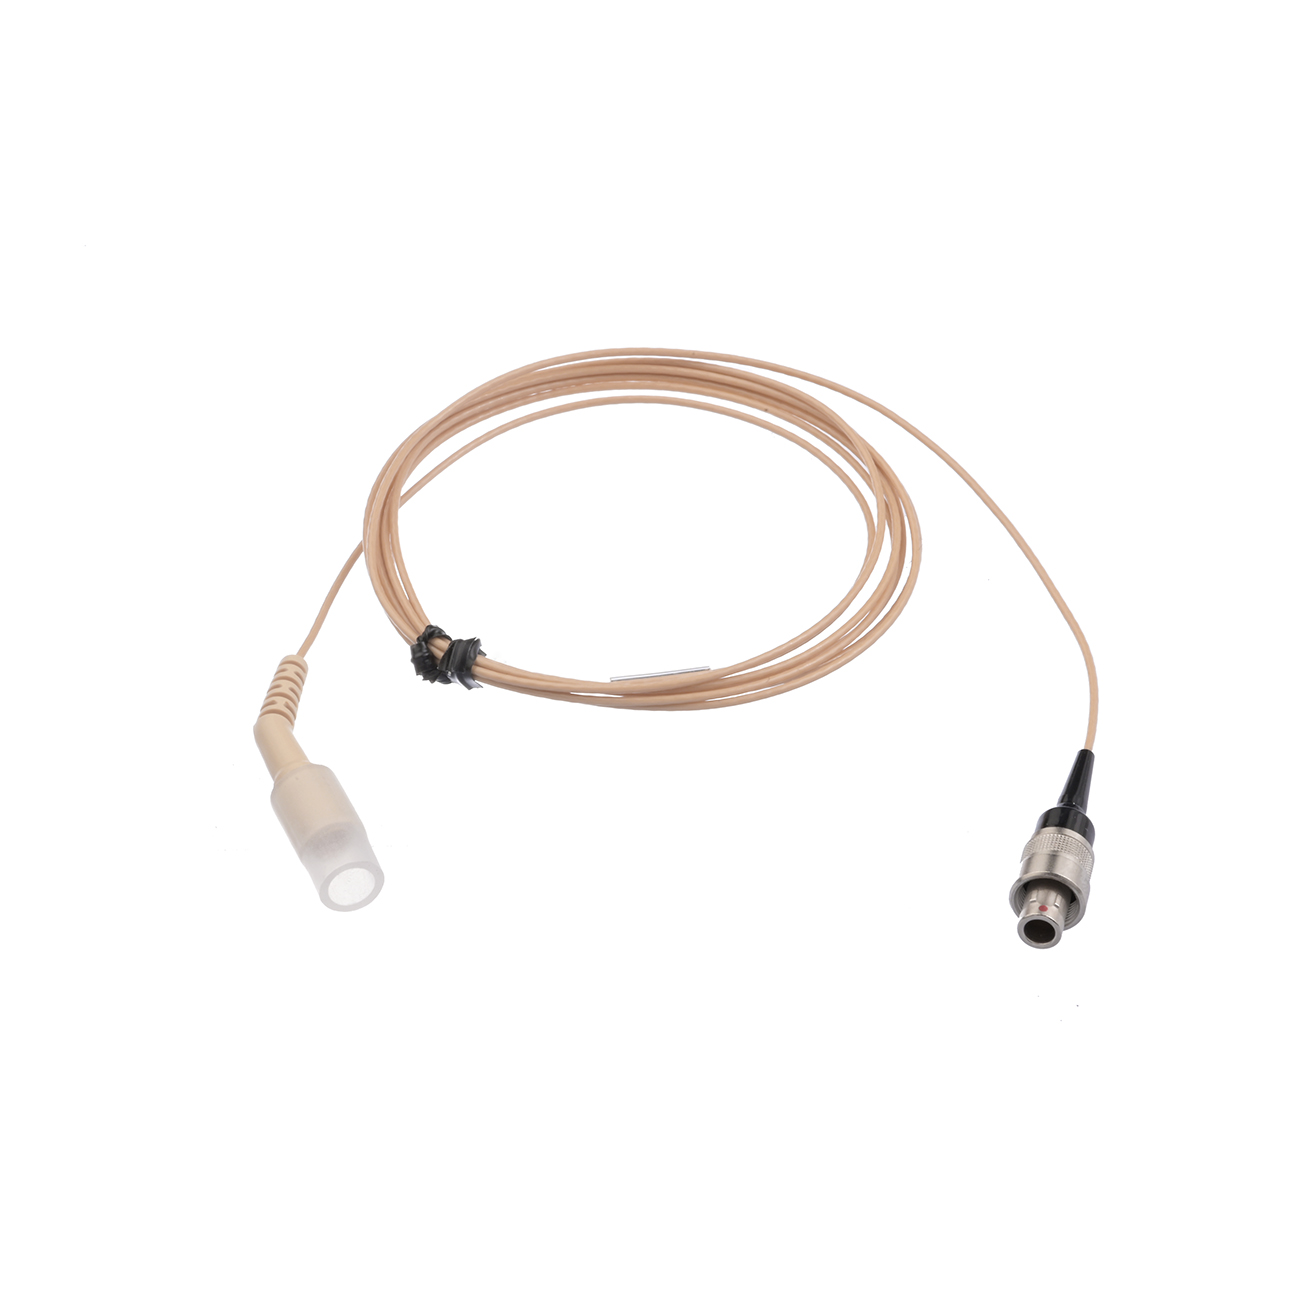 HSP CABLE 3PIN-BEIGE